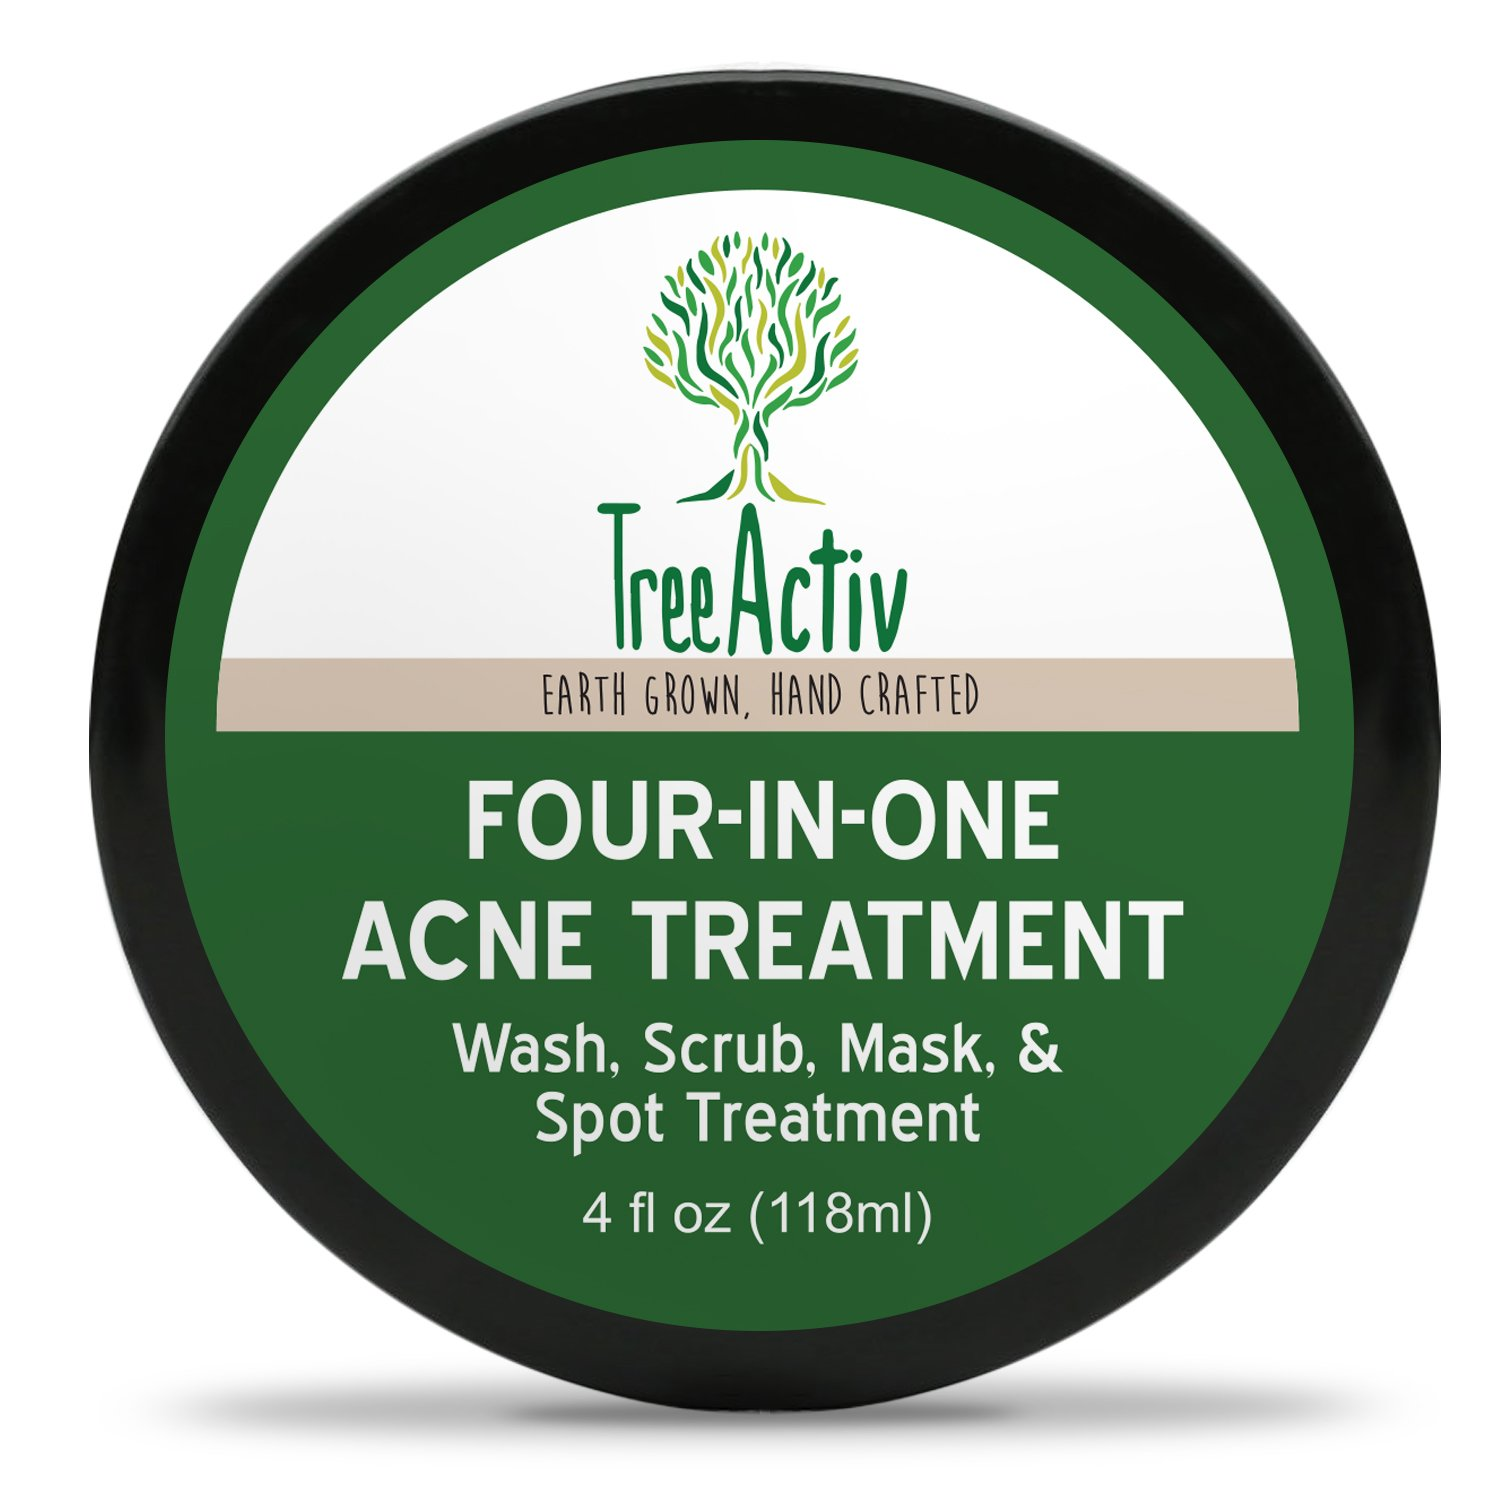 TreeActiv Four-in-One Acne Treatment, Wash, Scrub, Mask, and Spot Treatment, Heals Rosacea, Exfoliating Sugar, Face or Body, Natural Sulfur Clear Skin Cleanser, Bentonite (4 Oz) by TreeActiv